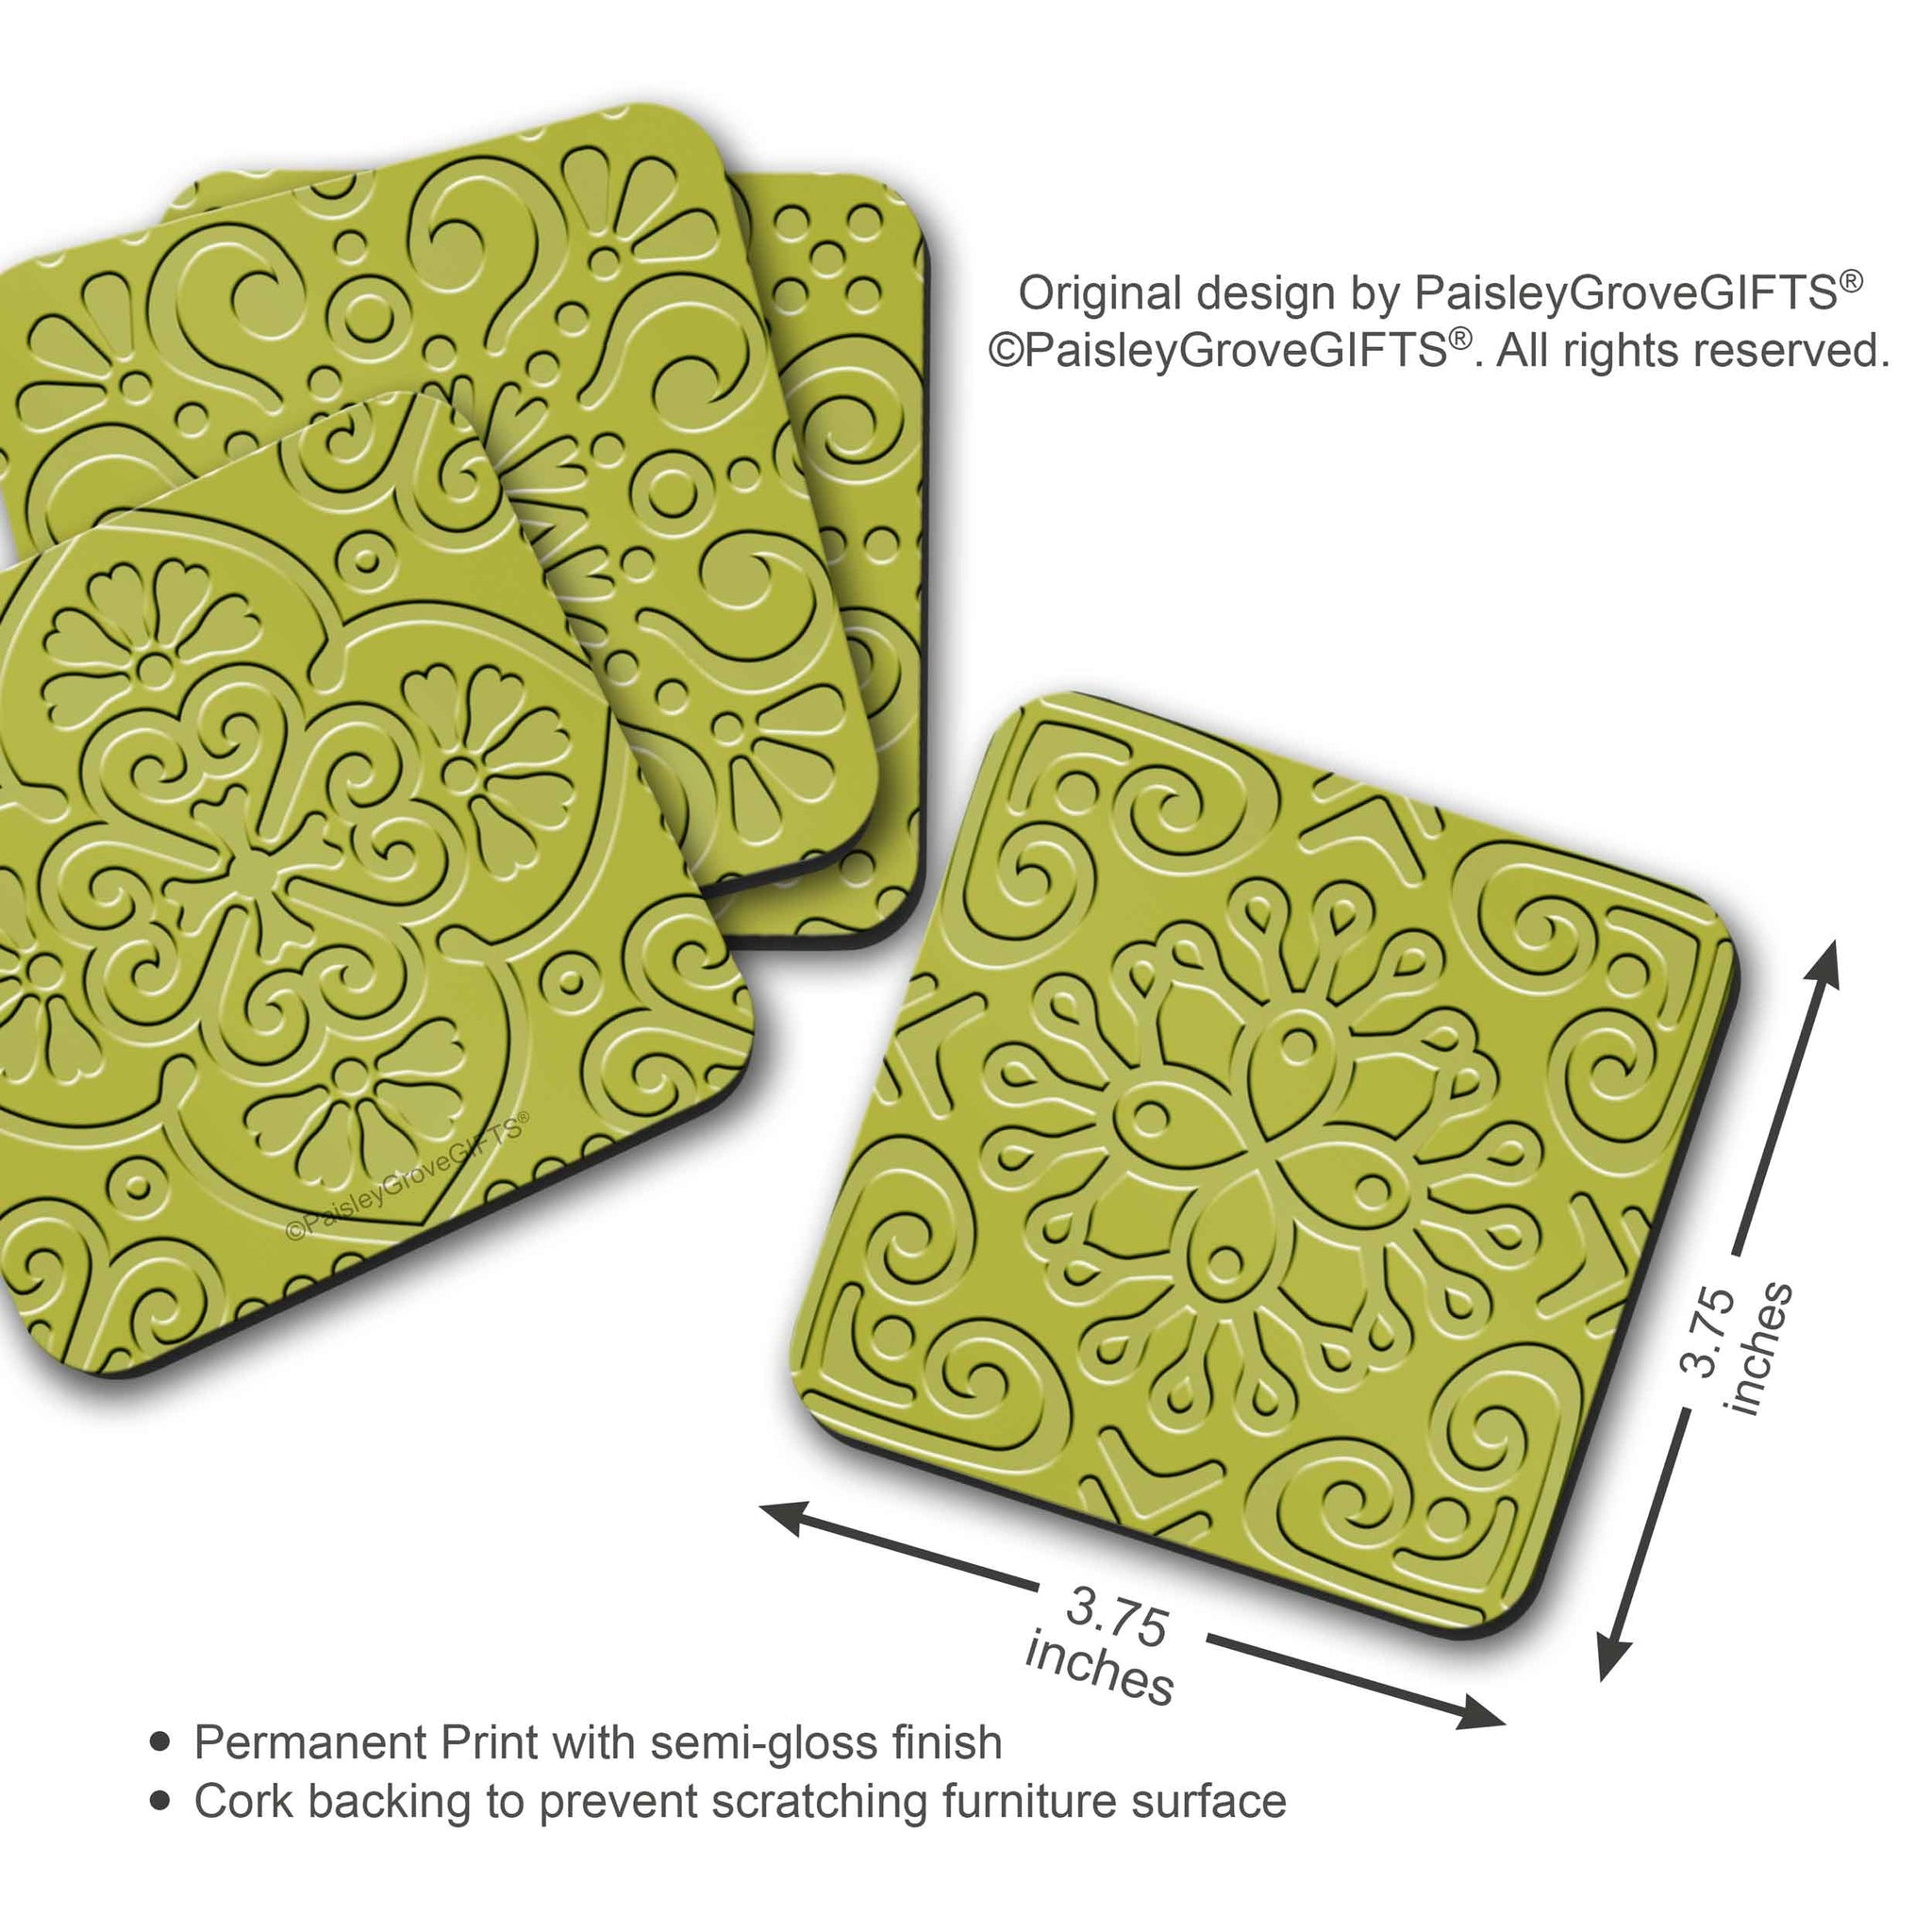 CopyrightPaisleyGroveGIFTS S706b Measurement Information Modern Chartreuse Drink Coasters Housewarming Gift Ideas